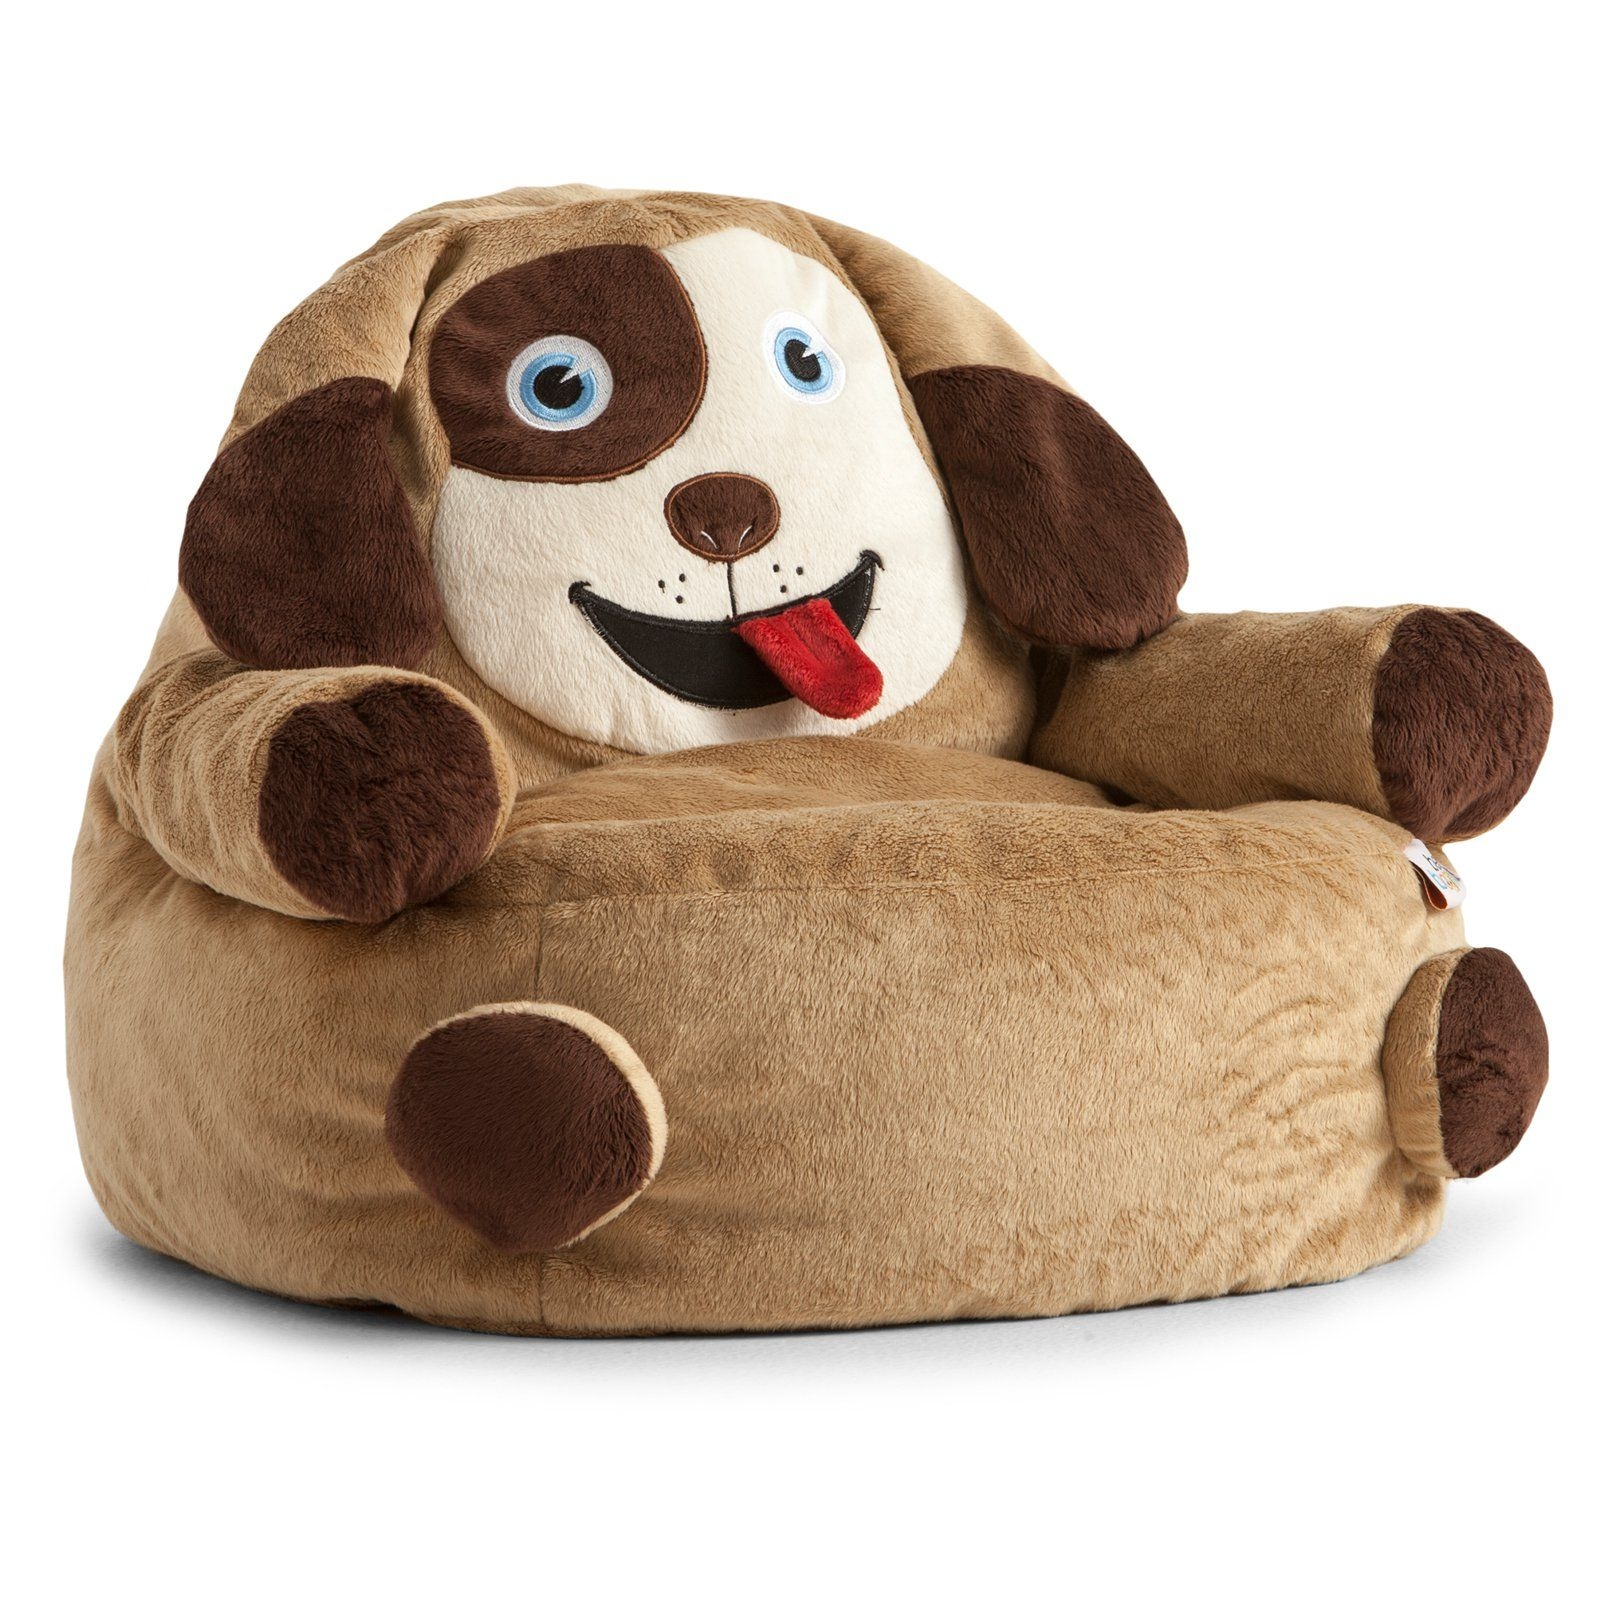 Amazing Bagimals Comfort Research Bagimals Arm Chair Bean Bag   Dog, Brown,  Polyester Cover